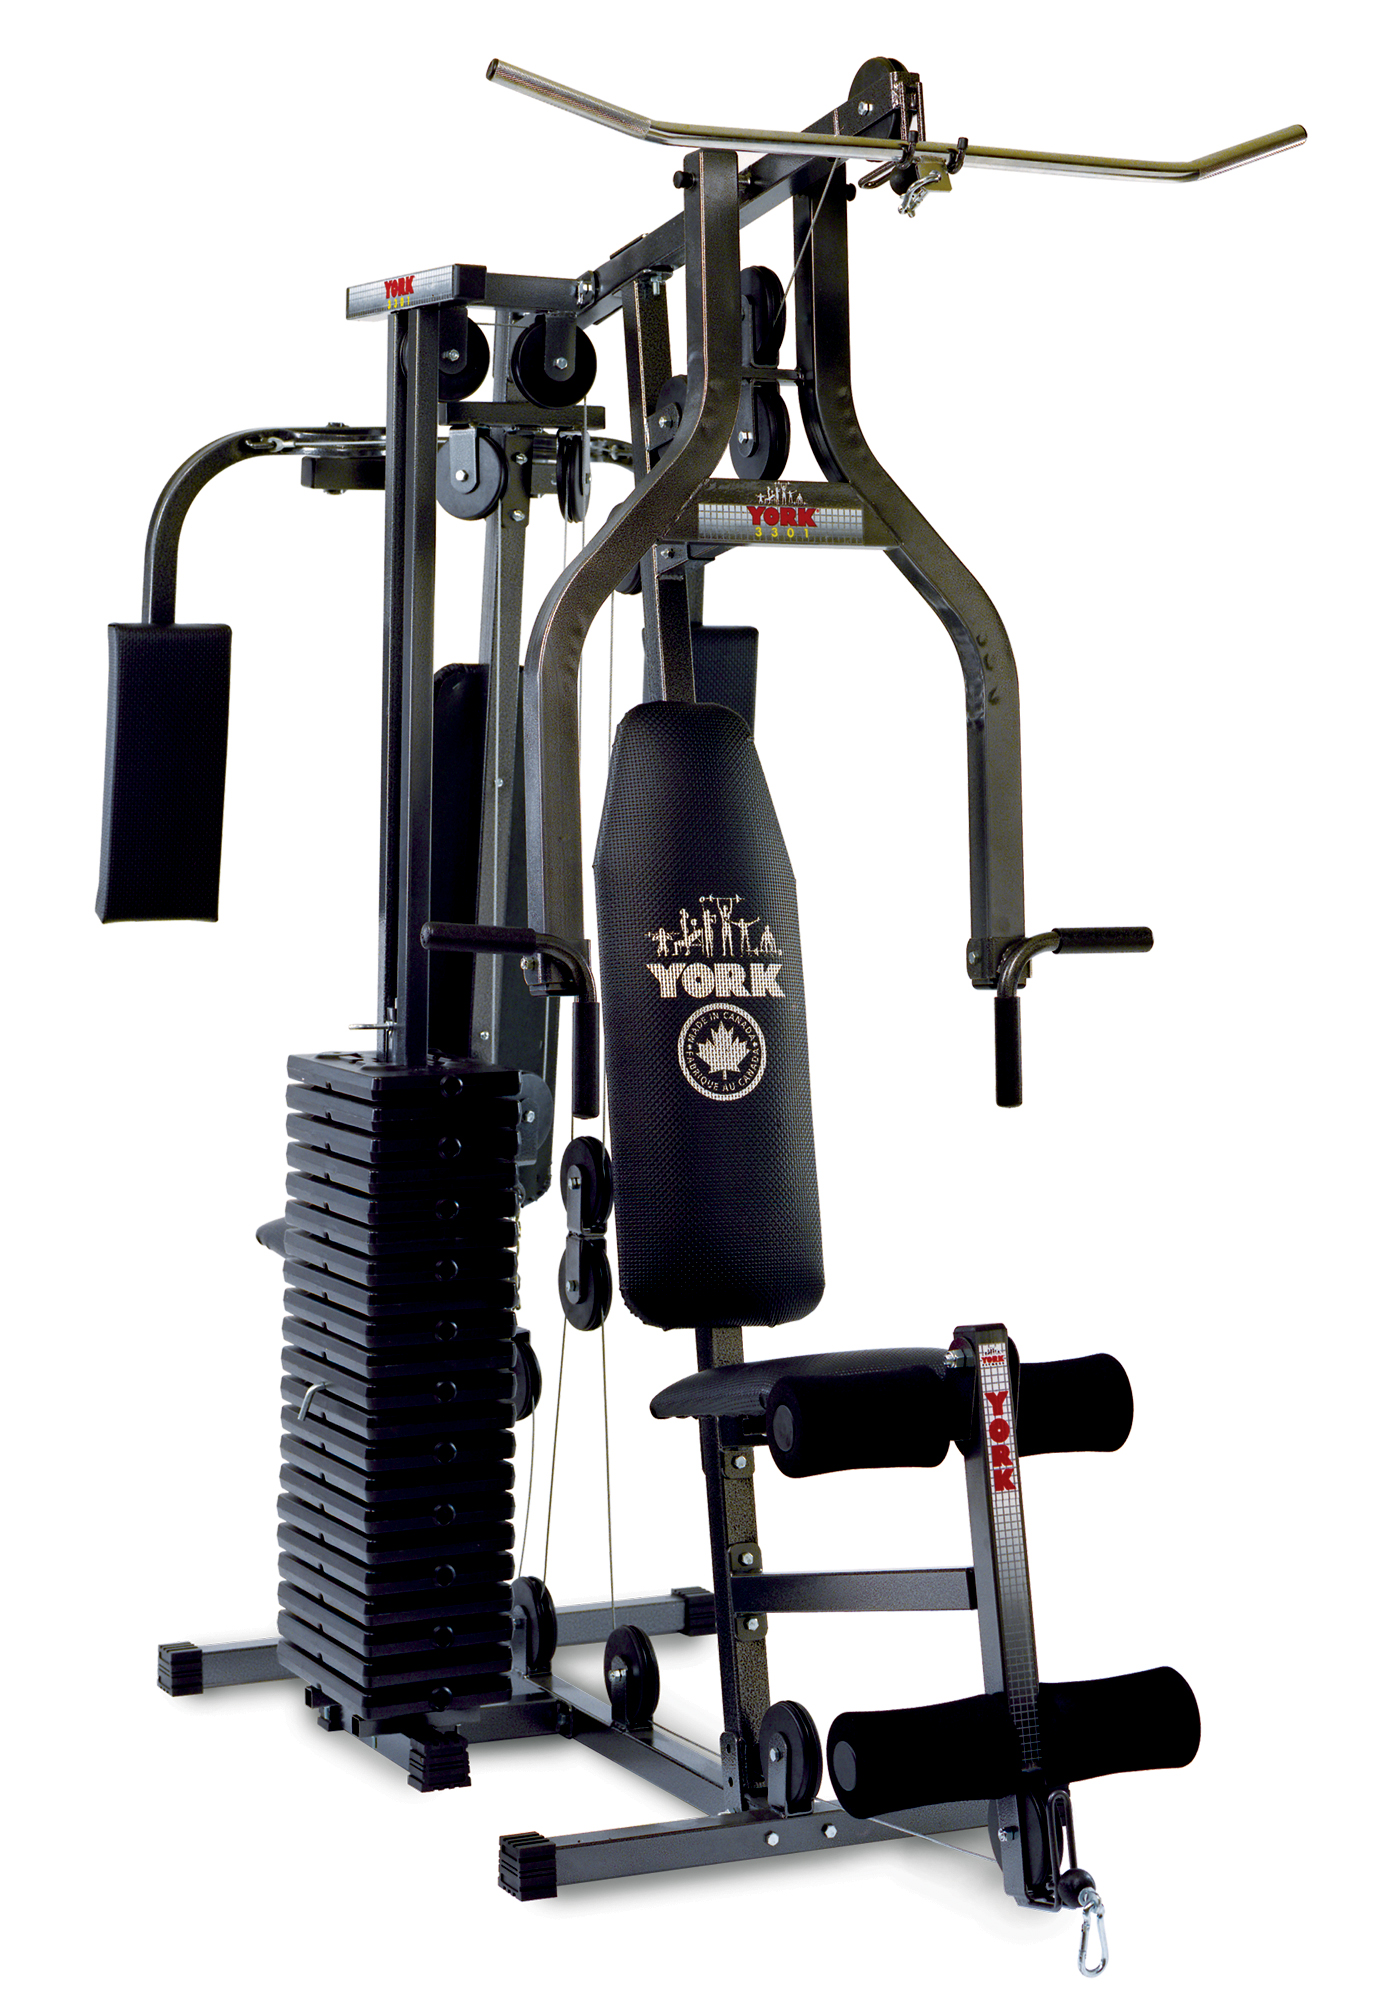 Power max home gym equipment york barbell